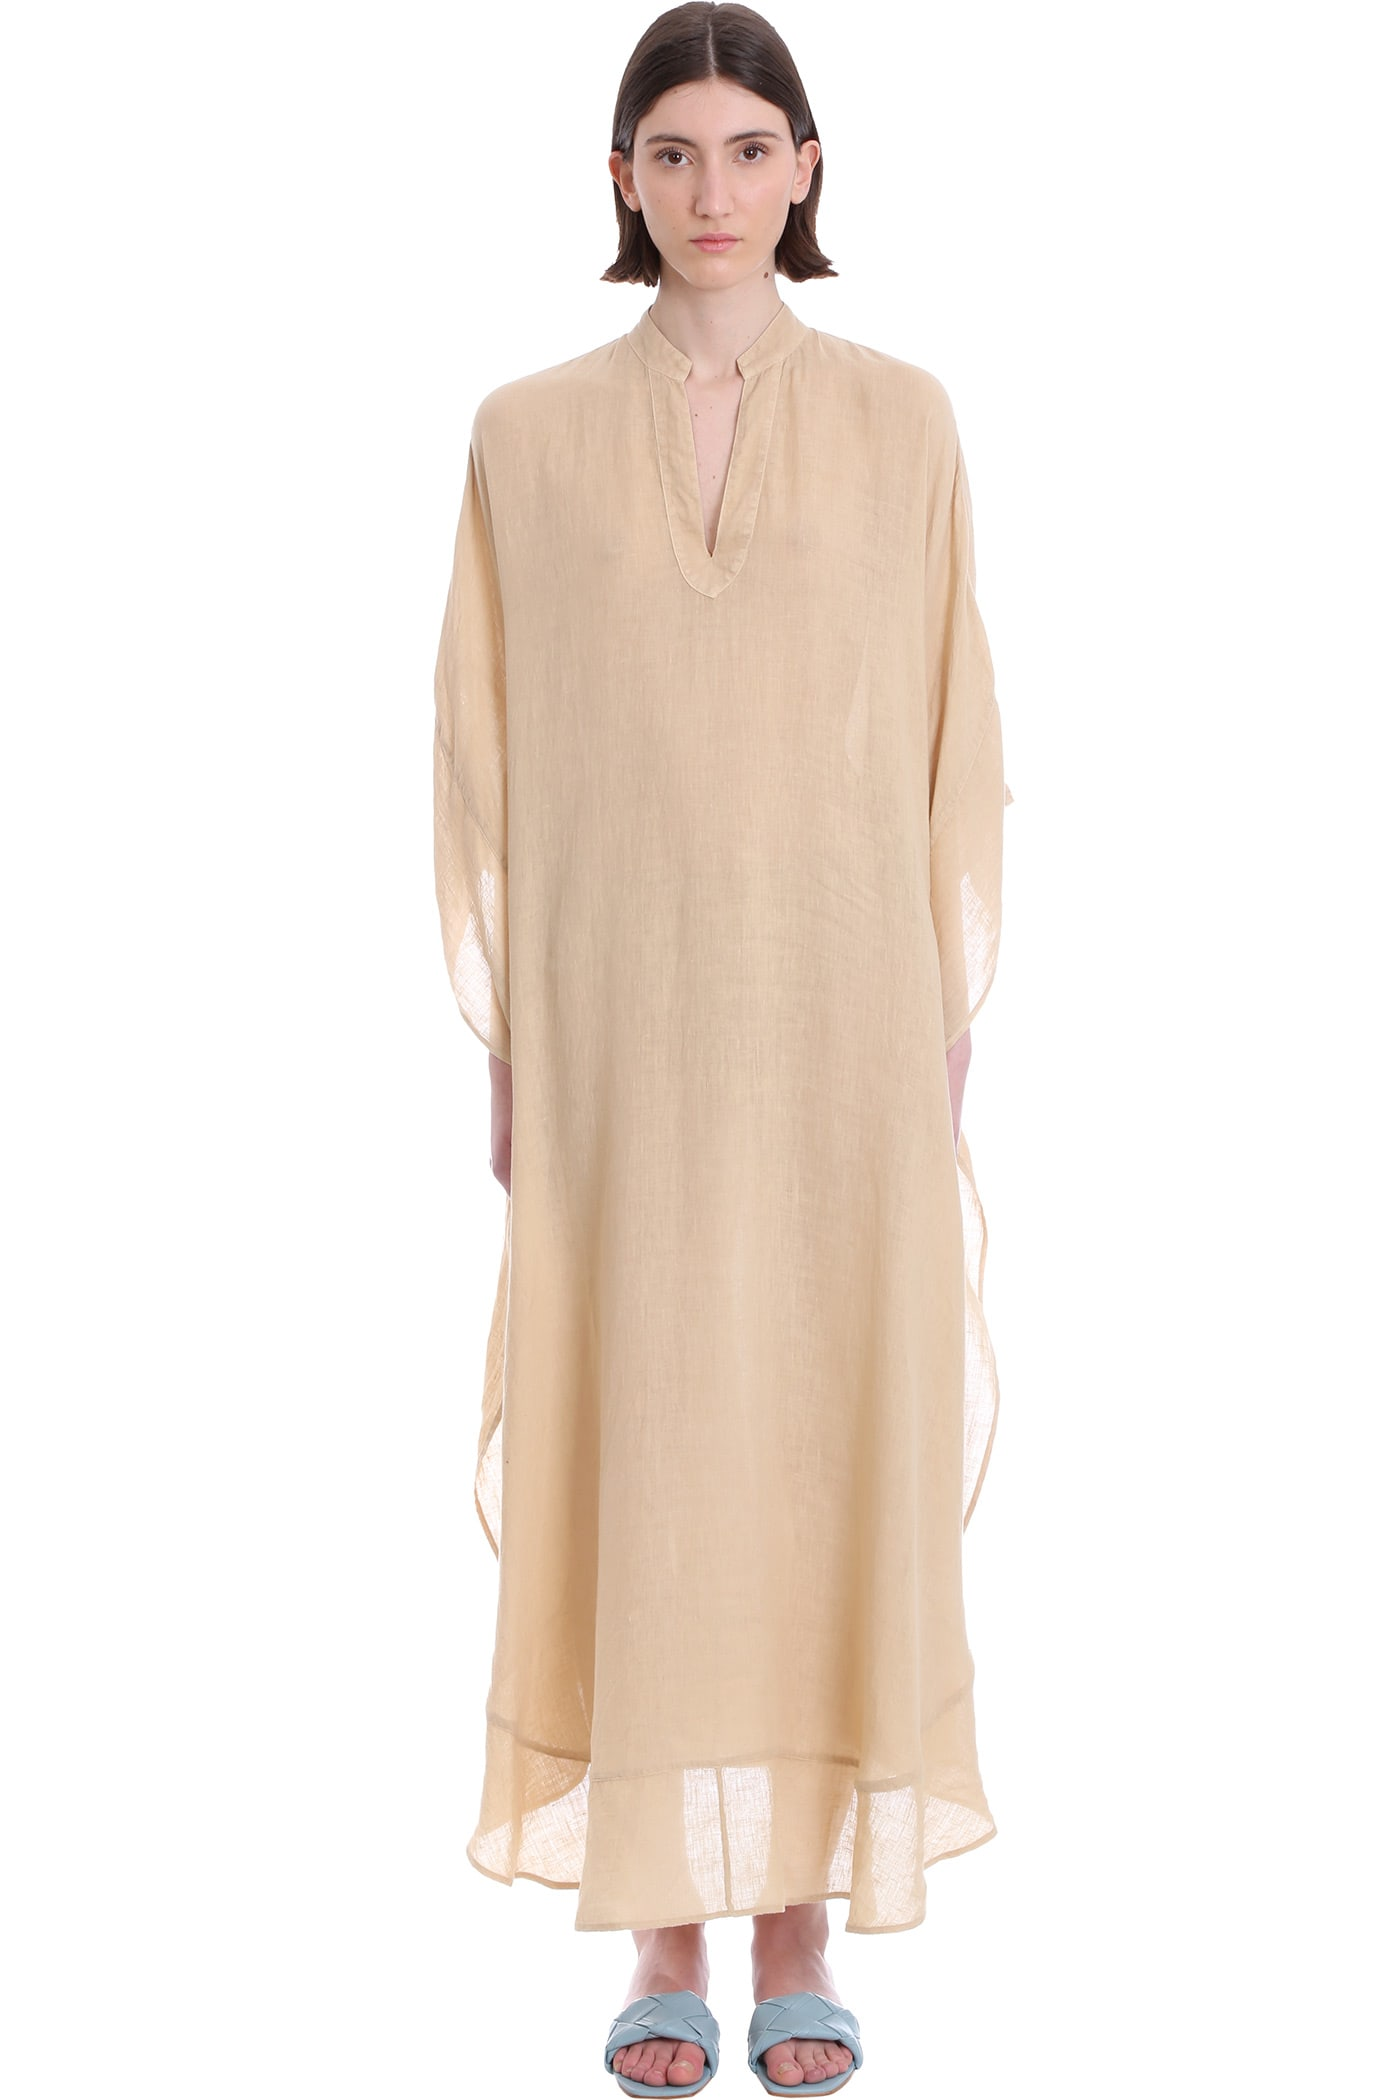 Buy 120% Lino Dress In Beige Linen online, shop 120 Lino with free shipping